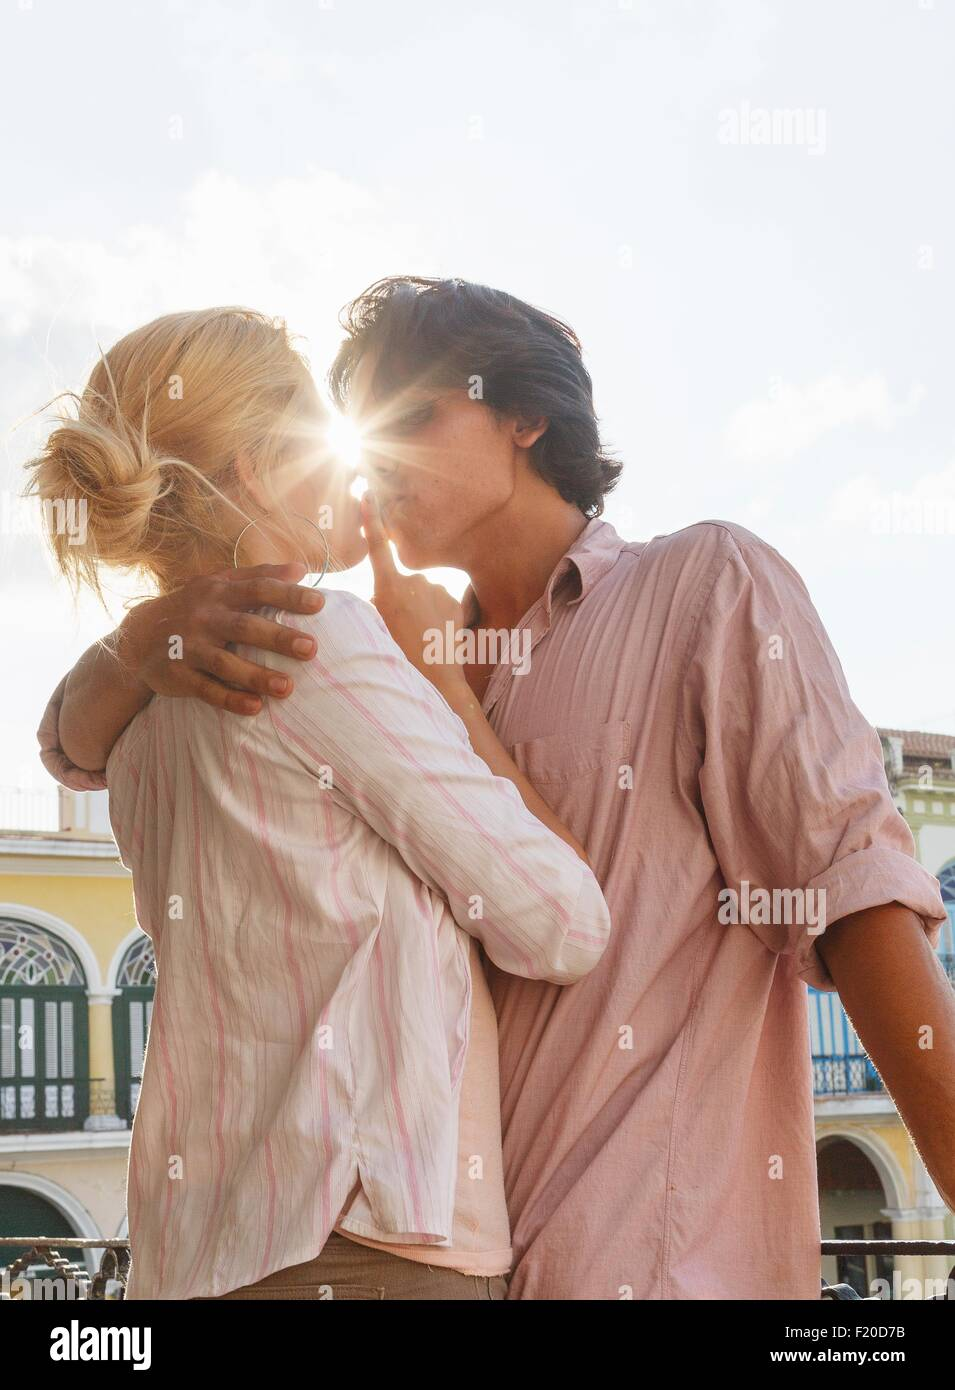 Romantic young couple kissing on restaurant balcony in Plaza Vieja, Havana, Cuba - Stock Image